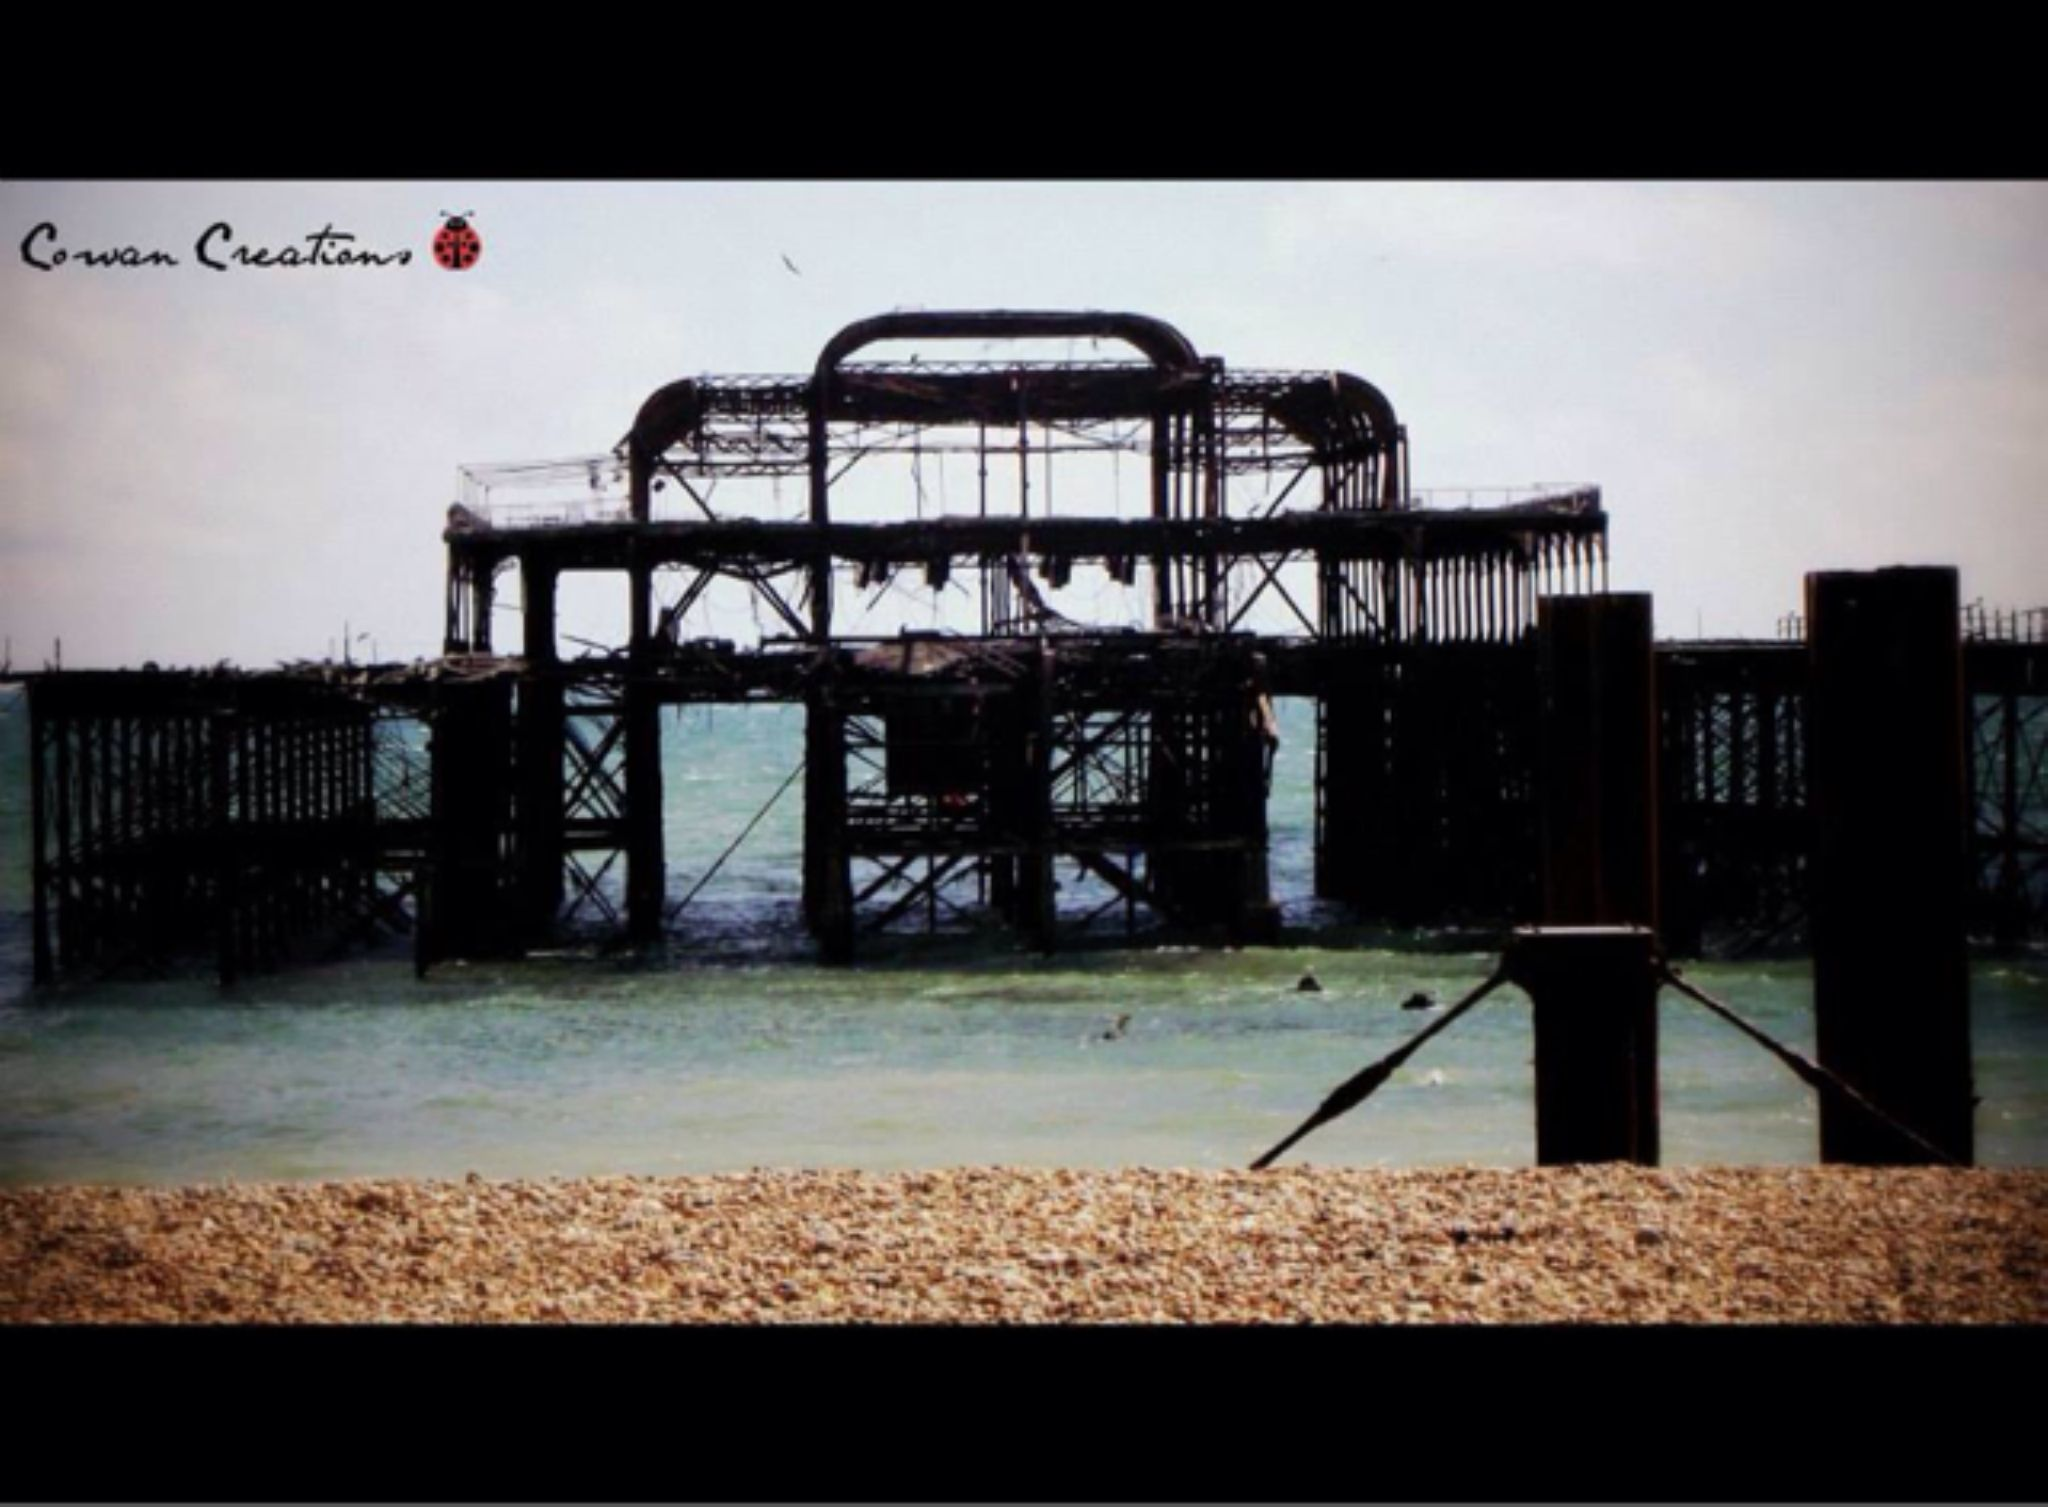 West Pier by CowanCreations